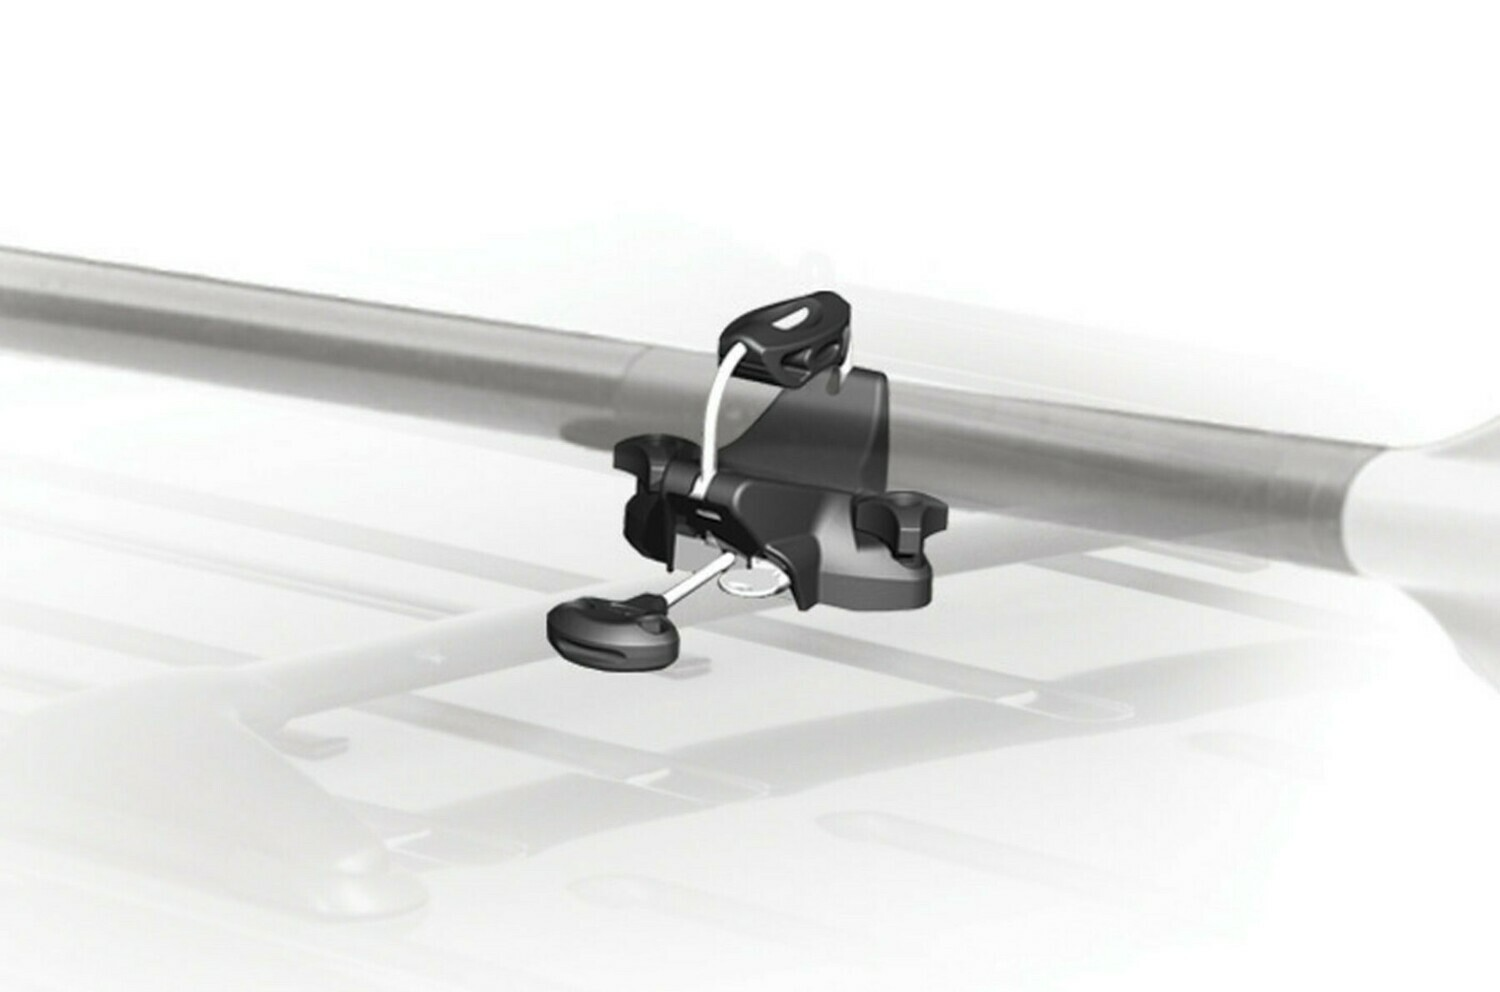 Thule Rack Attachment 'Get-a-Grip' Lockable Multi-Use Holder